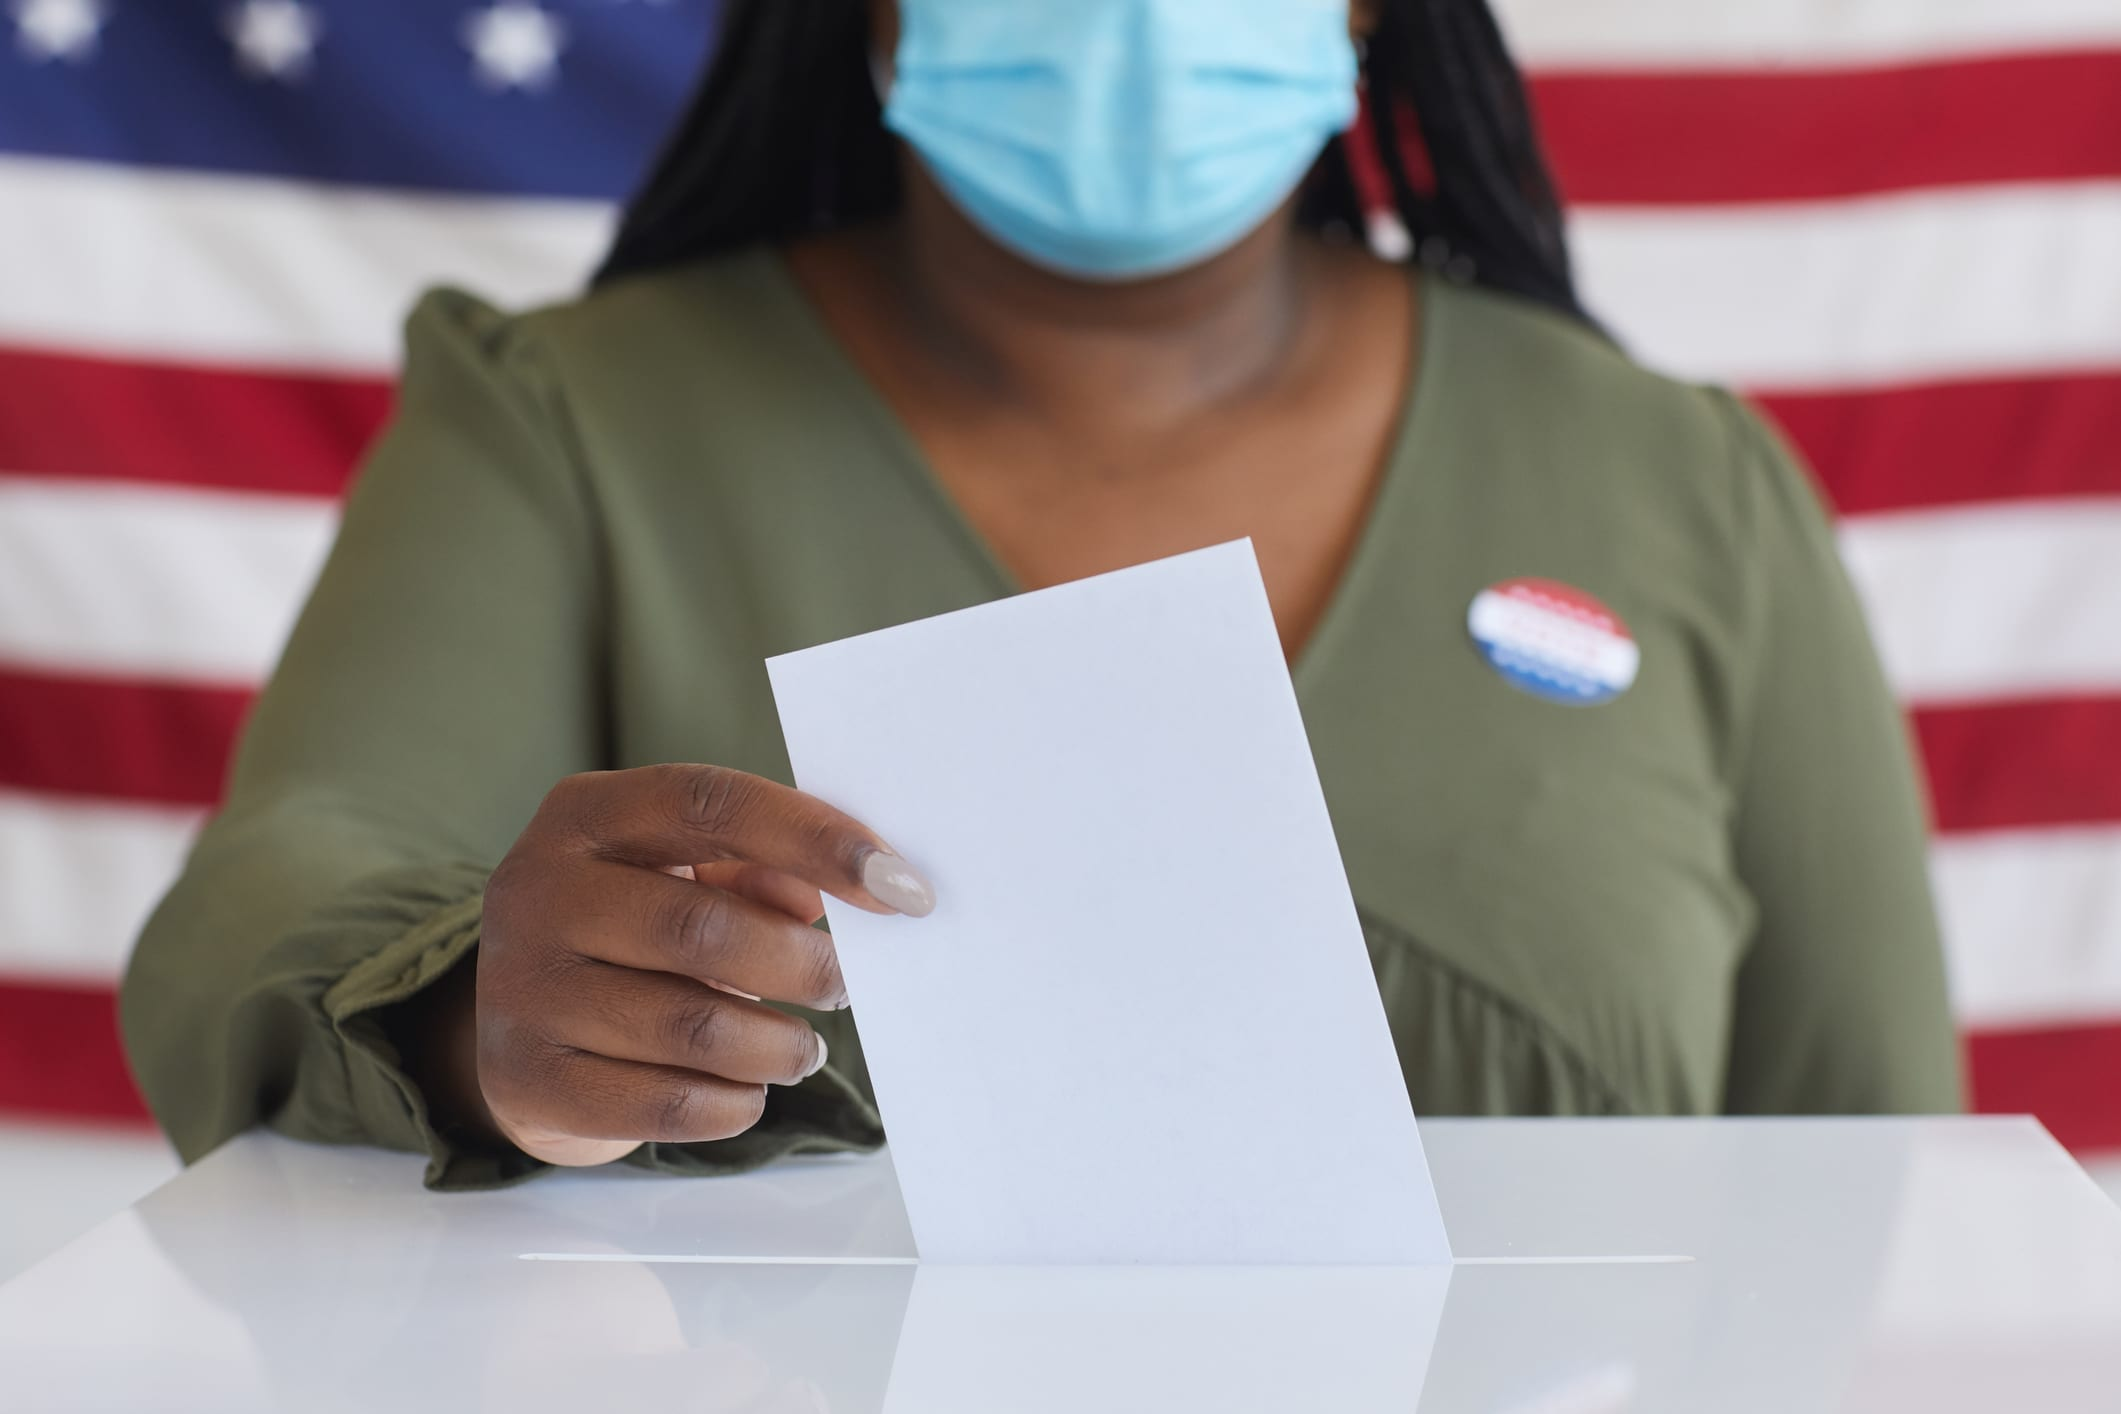 You can have civil rights like voting restored after a felony conviction.